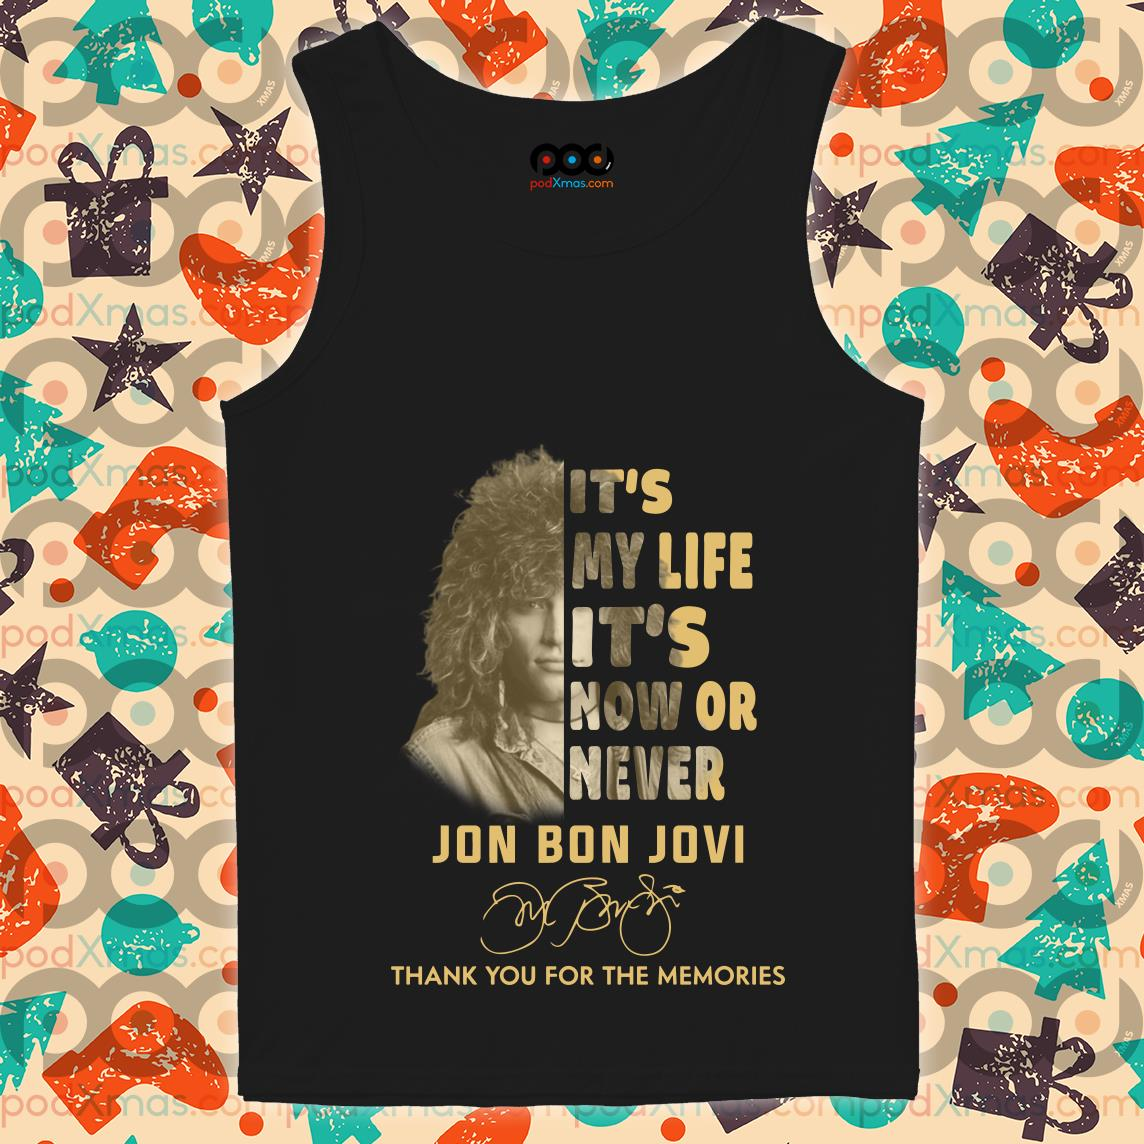 It's my life it's now or never Jon Bon Jovi signature Thank you for the memories tank top